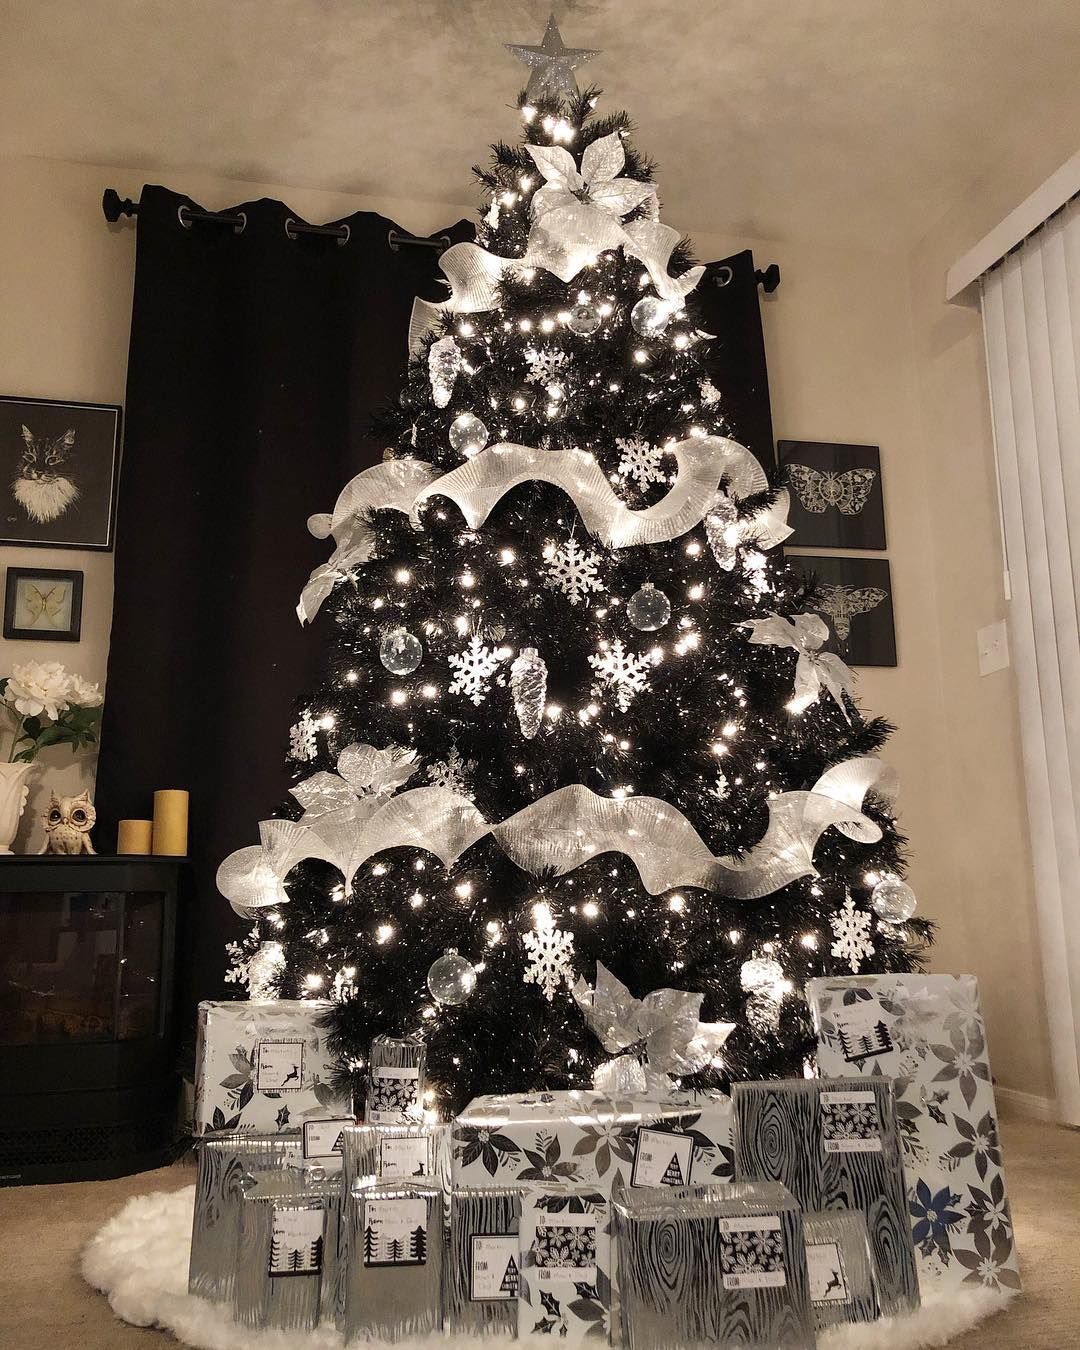 These Stunning Black Christmas Trees Will Convince You to Go Dark This Year